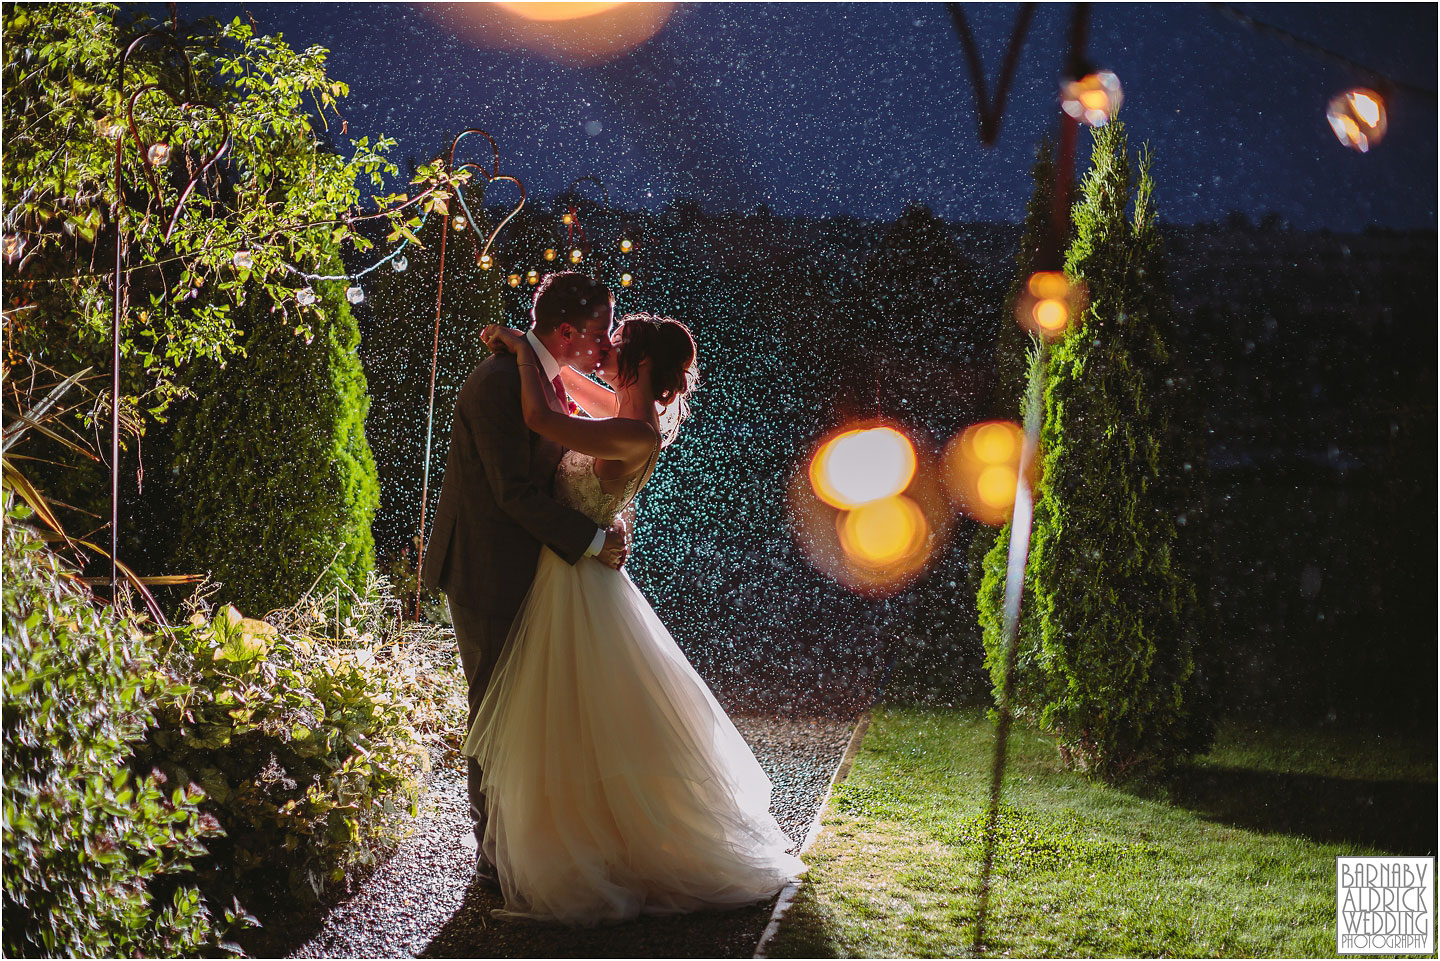 Yorkshire Wedding Barns Amazing wedding photo in the rain, Amazing Yorkshire Wedding Photos, Best Yorkshire Wedding Photos 2018